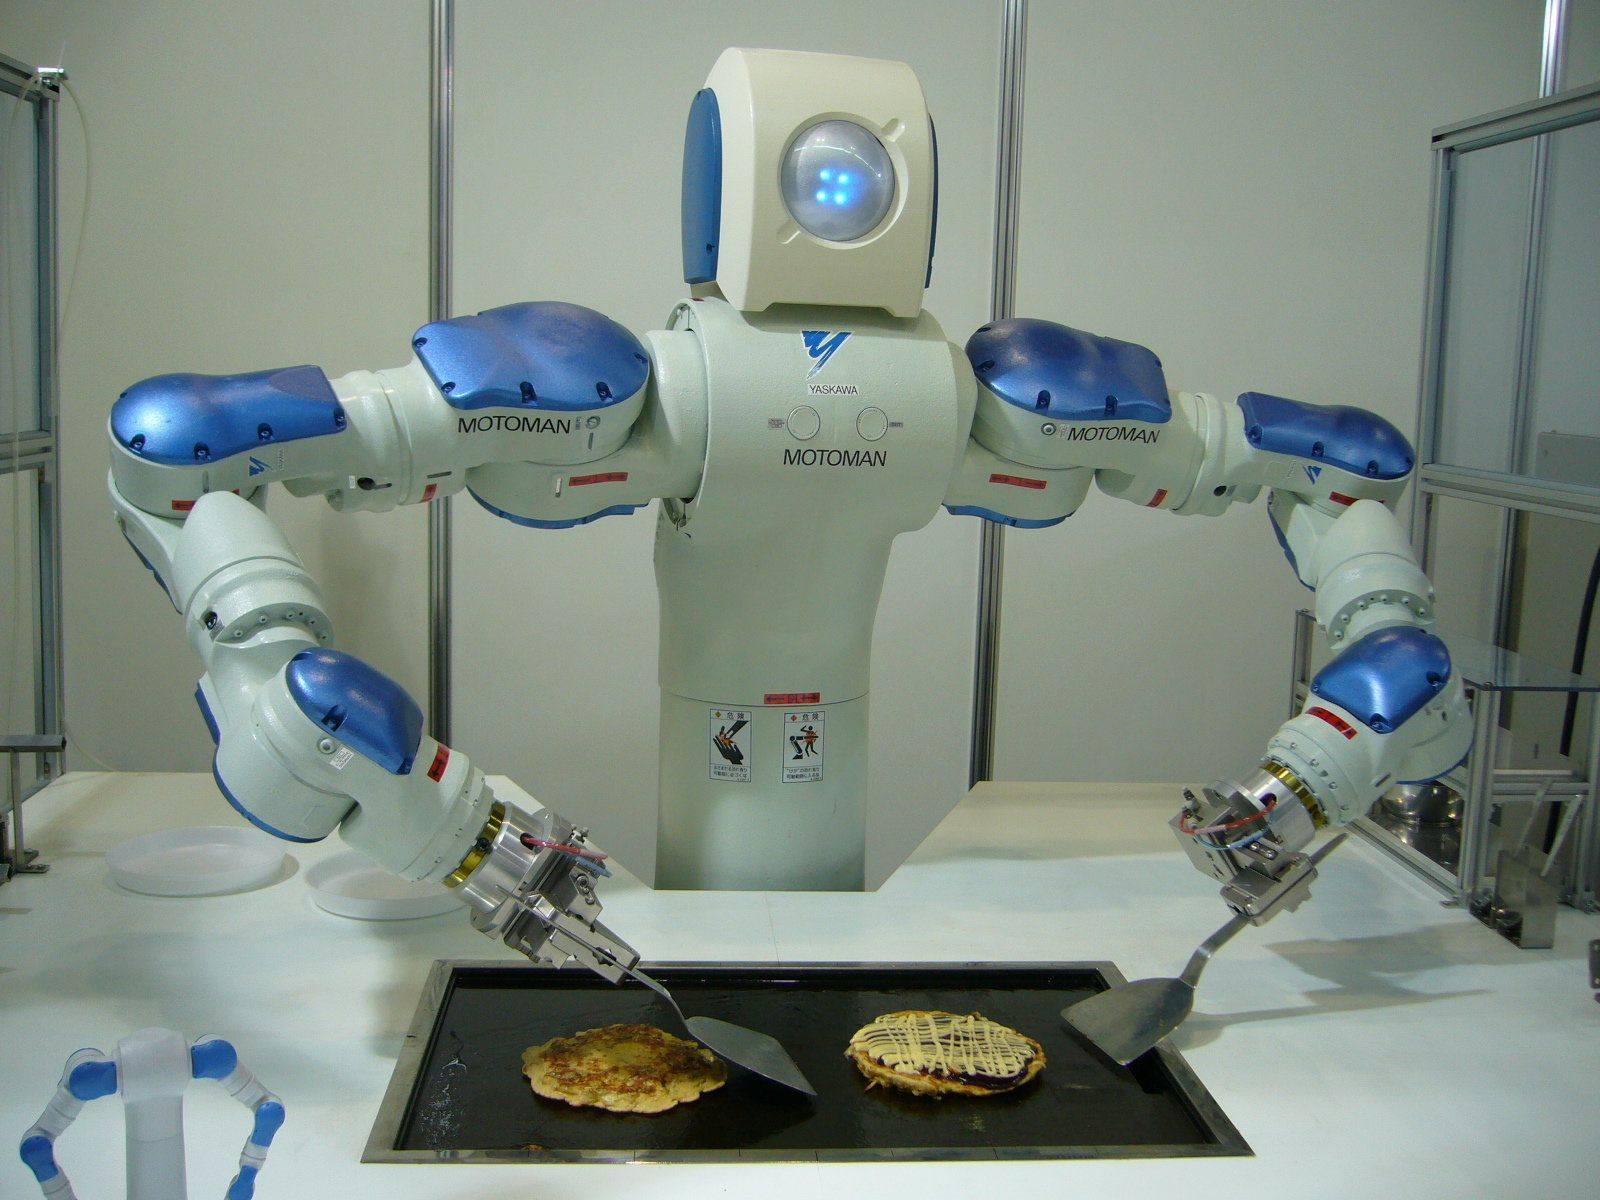 A robot prototype practices his cooking skills.